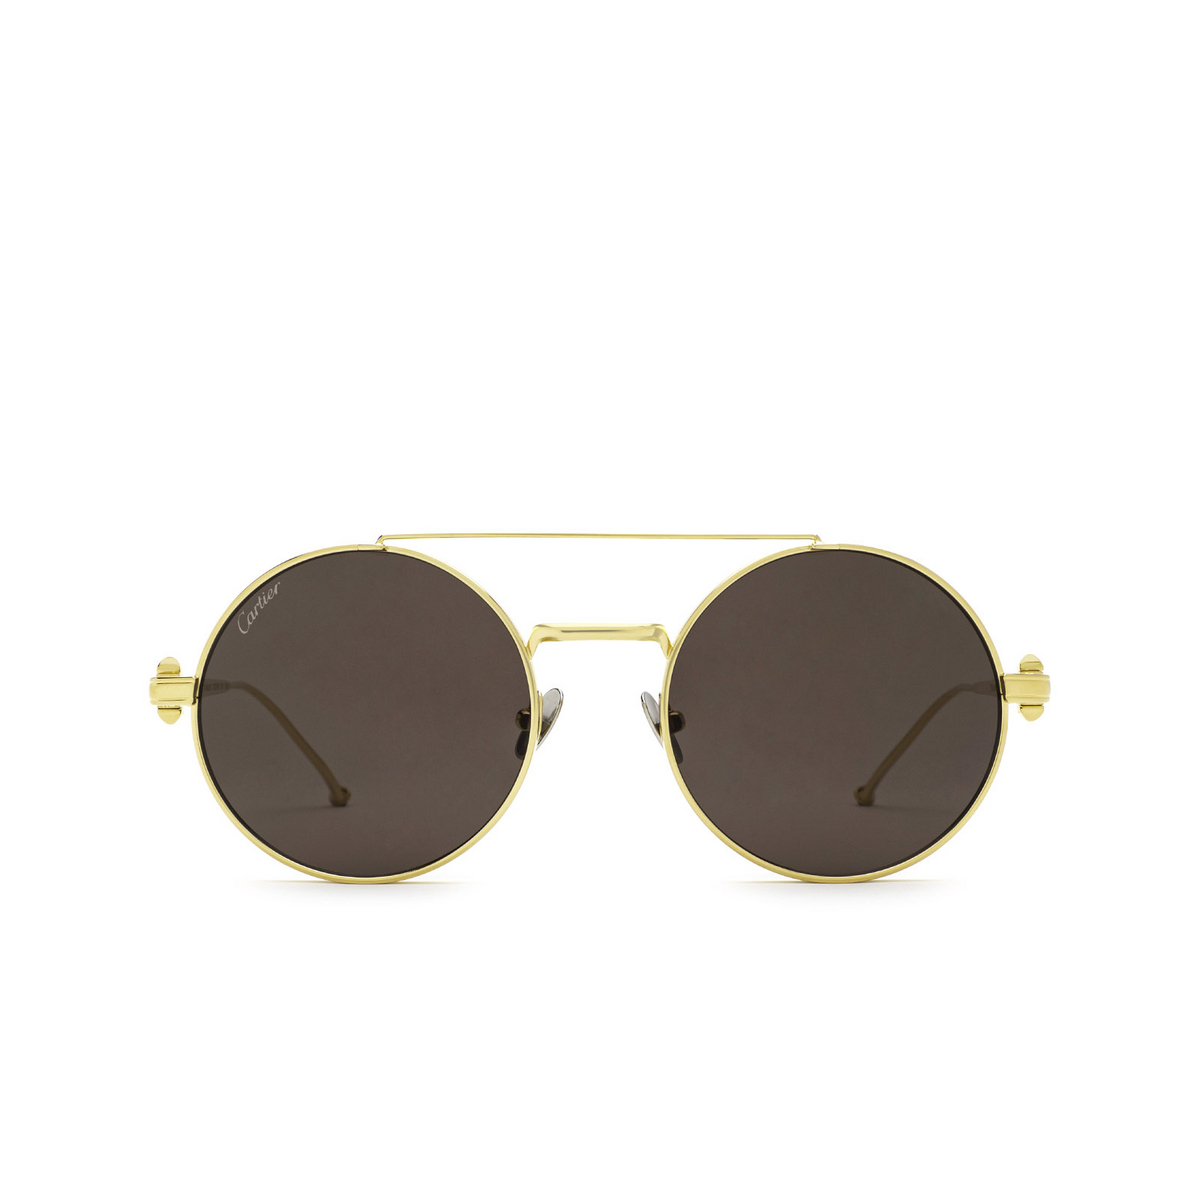 Cartier® Round Sunglasses: CT0279S color Gold 001 - front view.